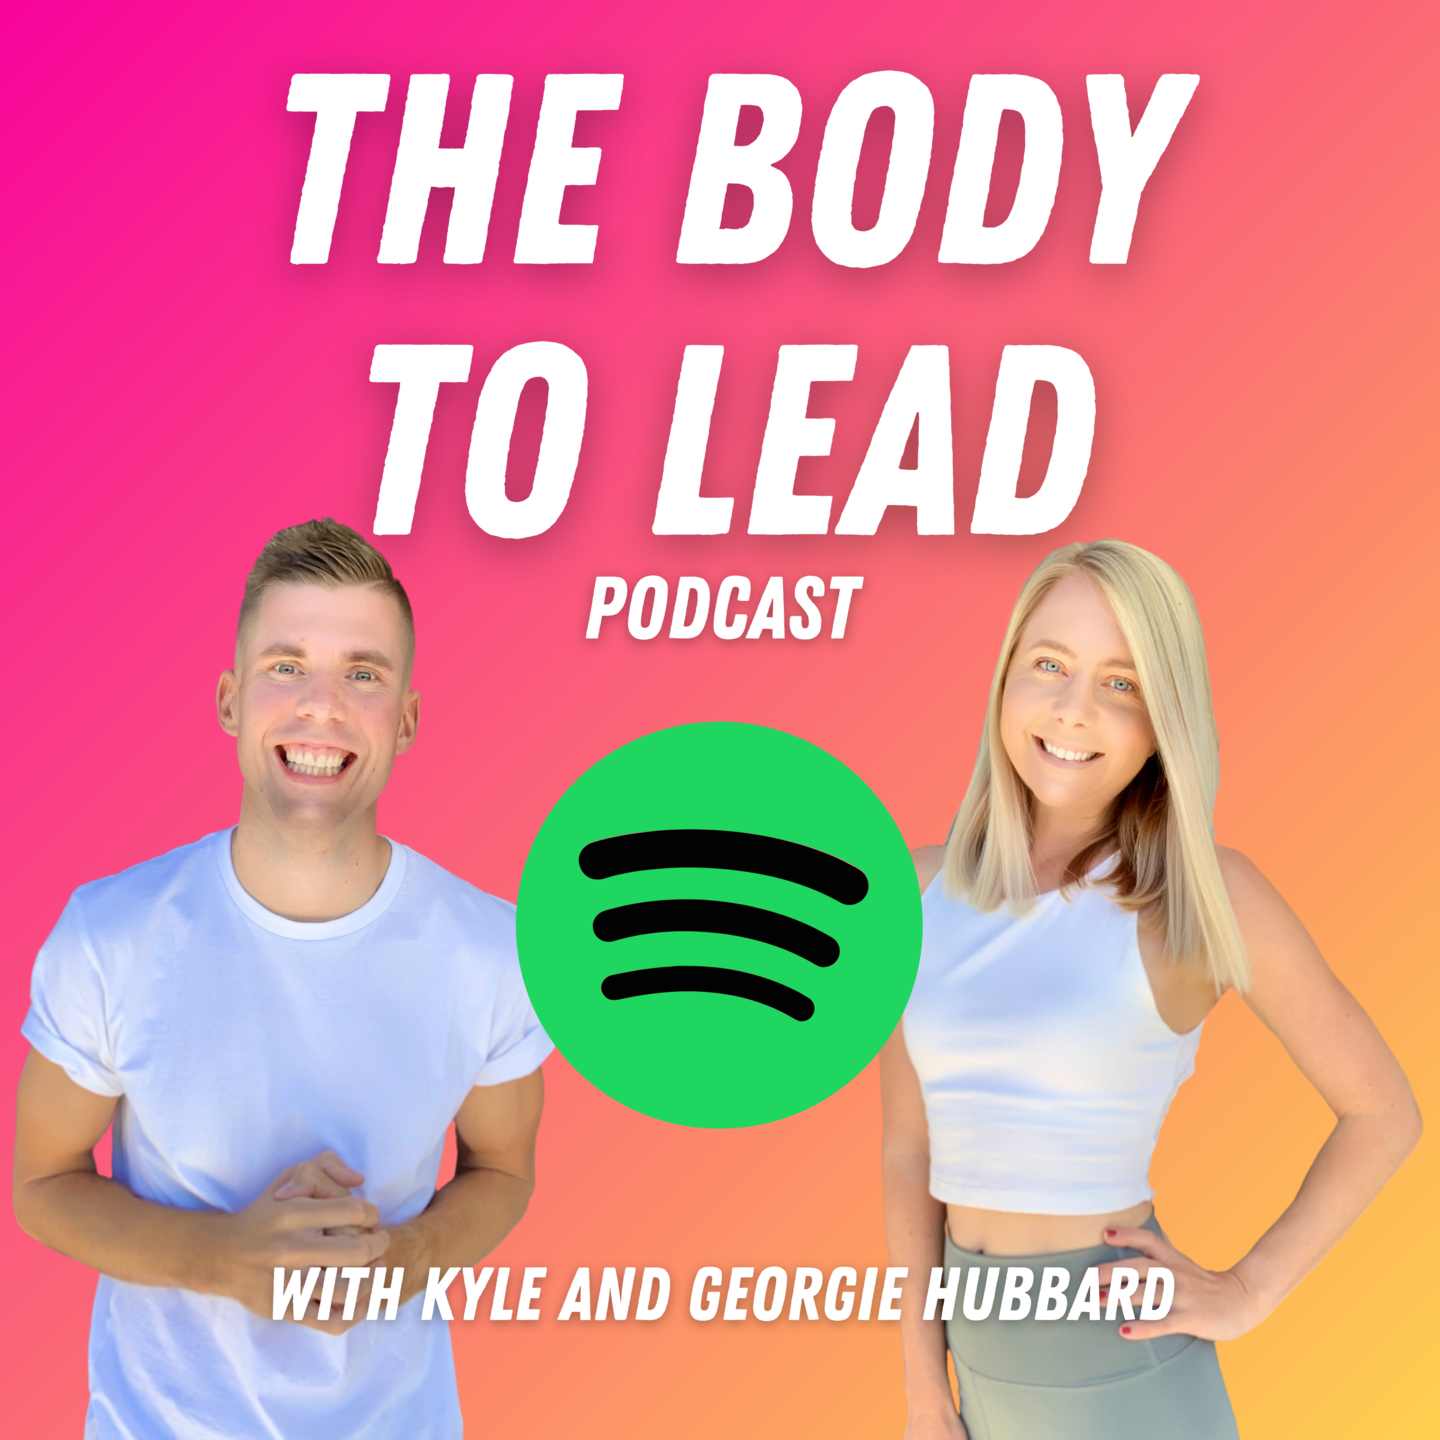 The Body to Lead Podcast Spotify